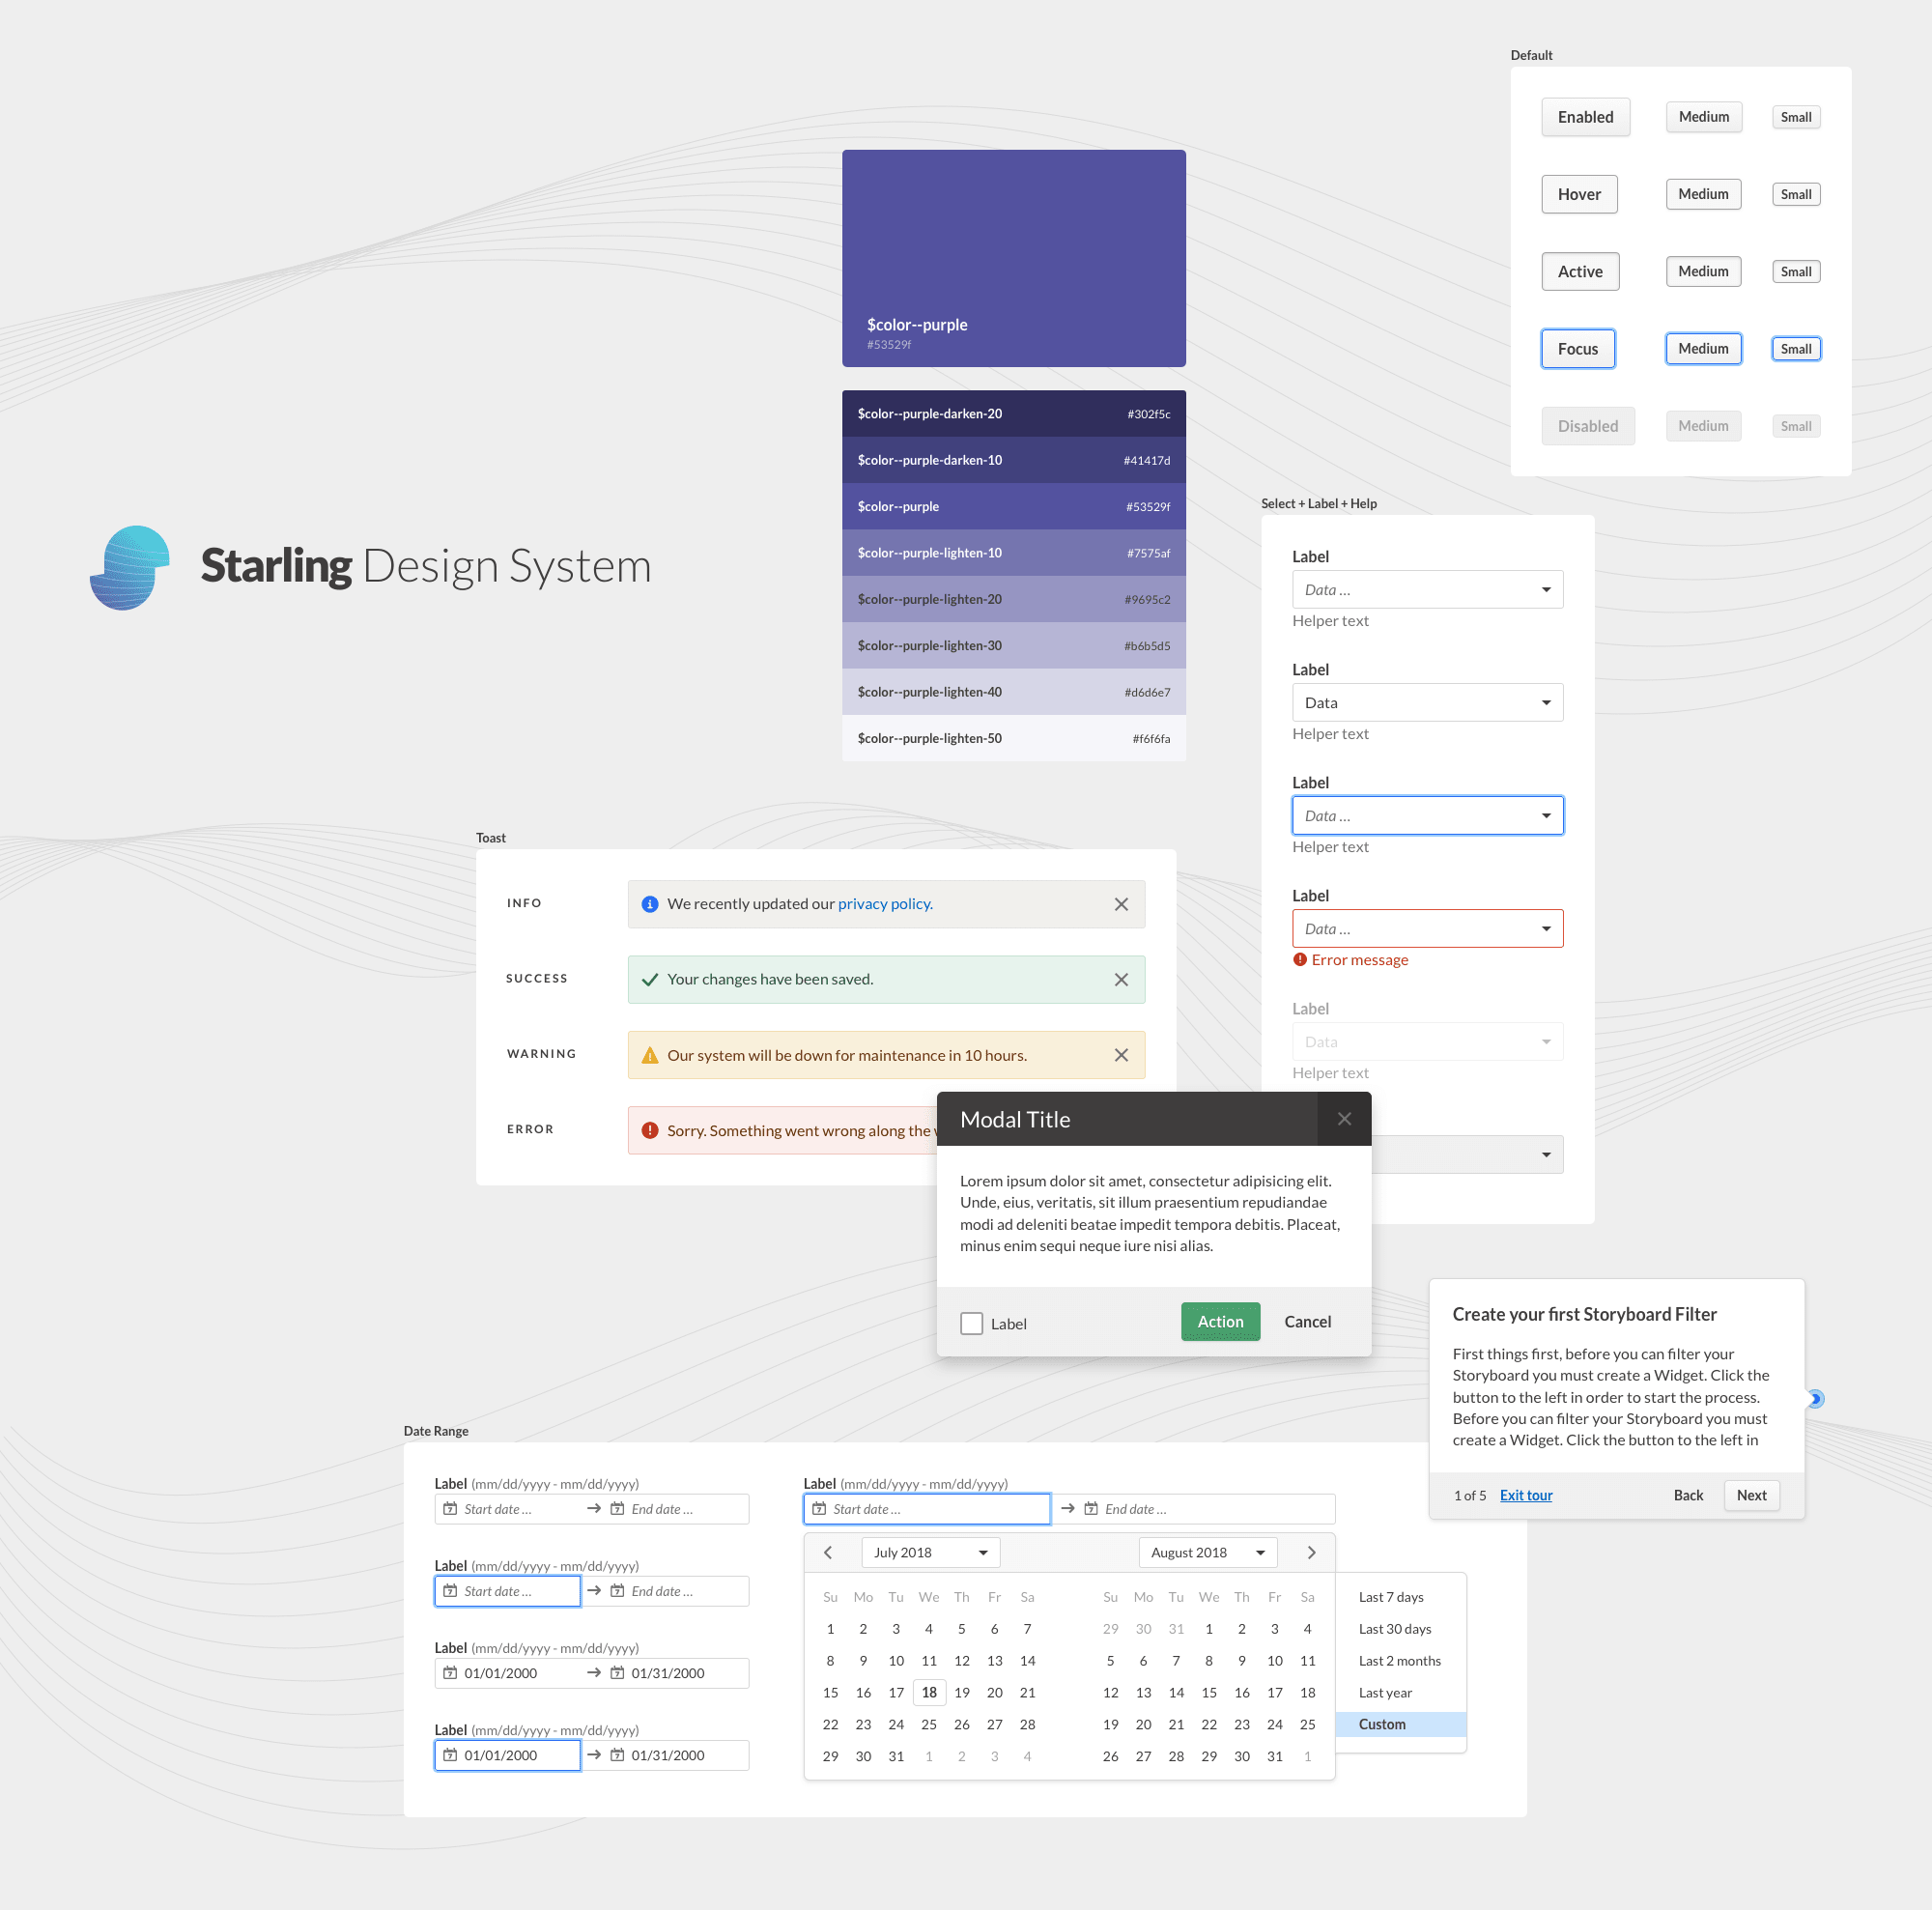 The Starling Design System